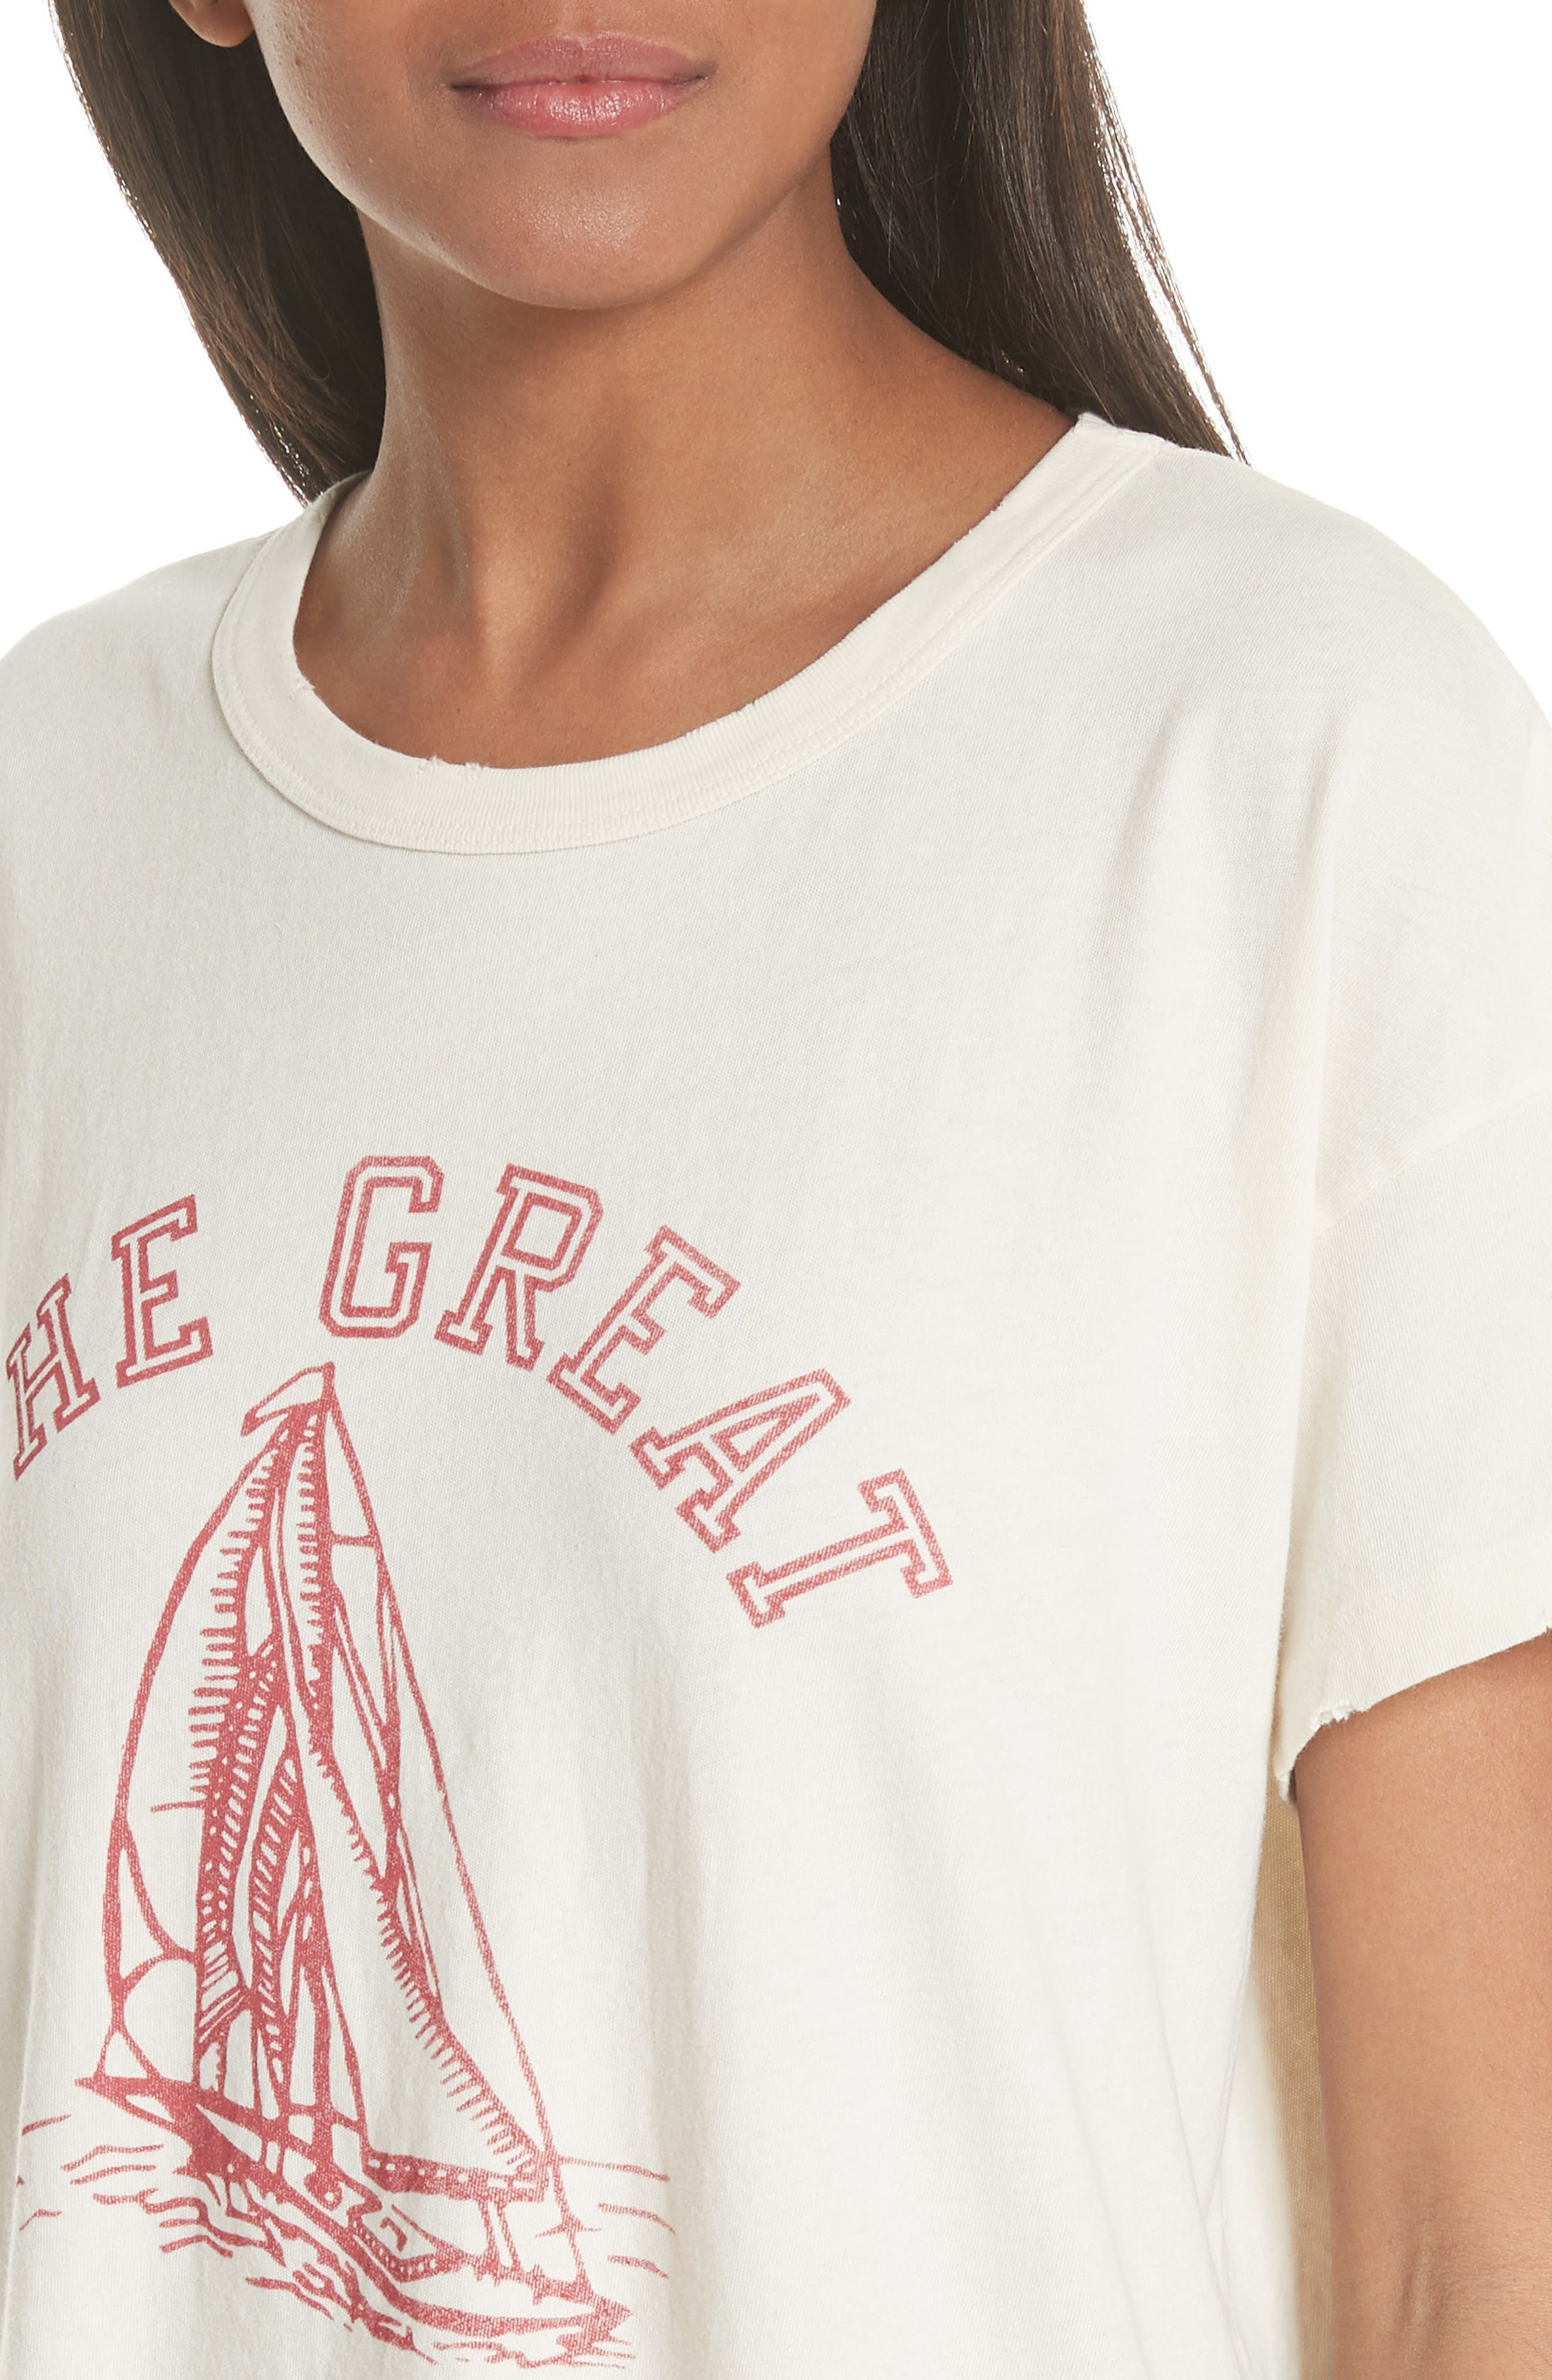 Tee,                             Alternate thumbnail 4, color,                             Washed White